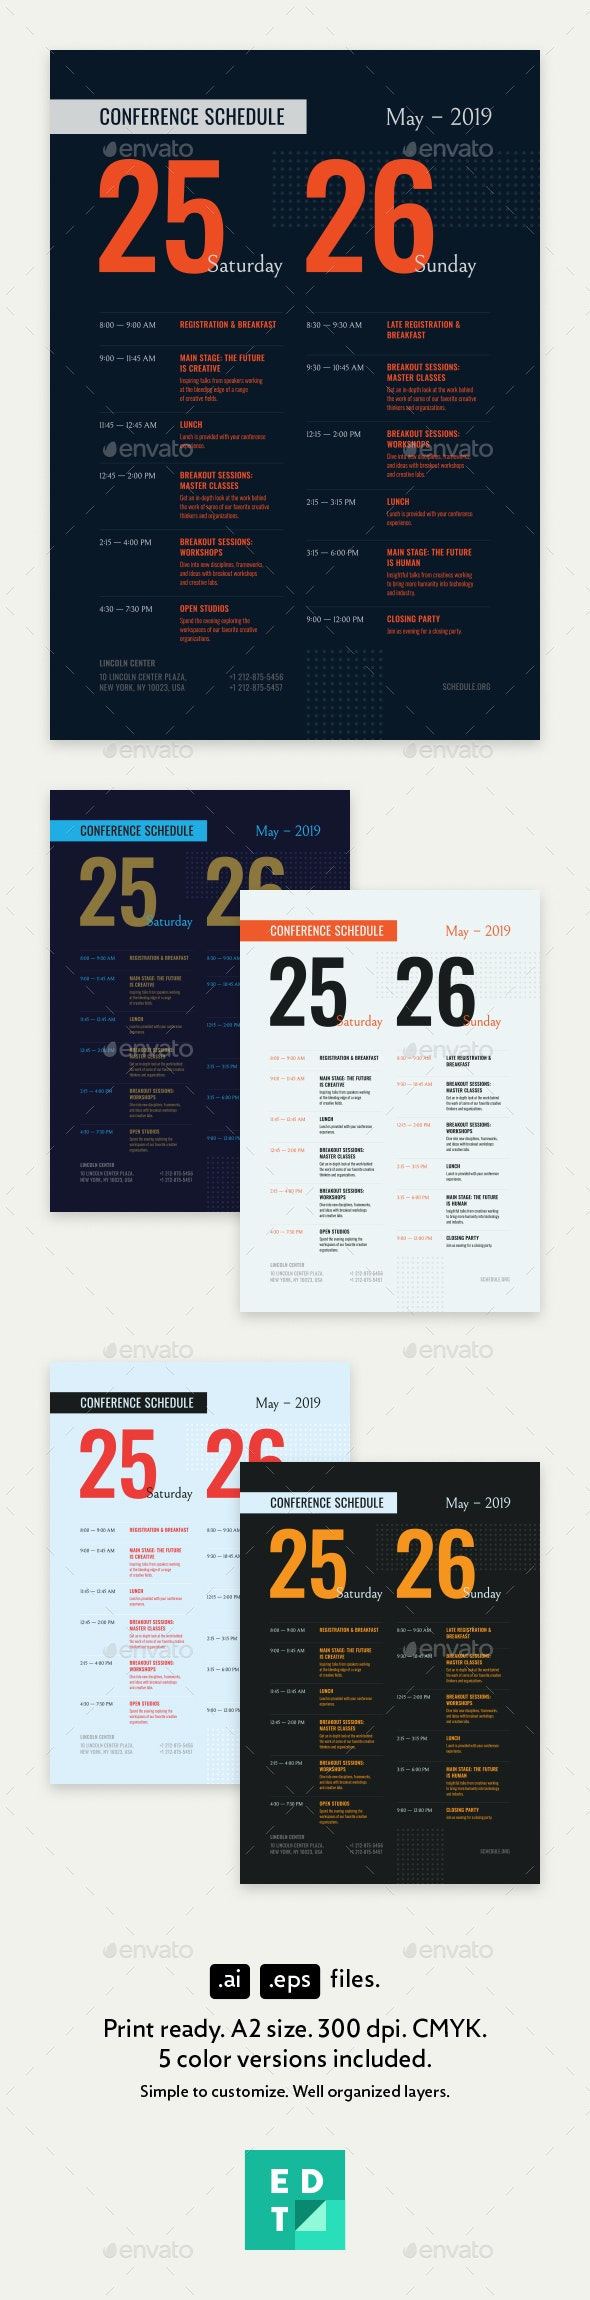 Conference Schedule Poster Template - Events Flyers